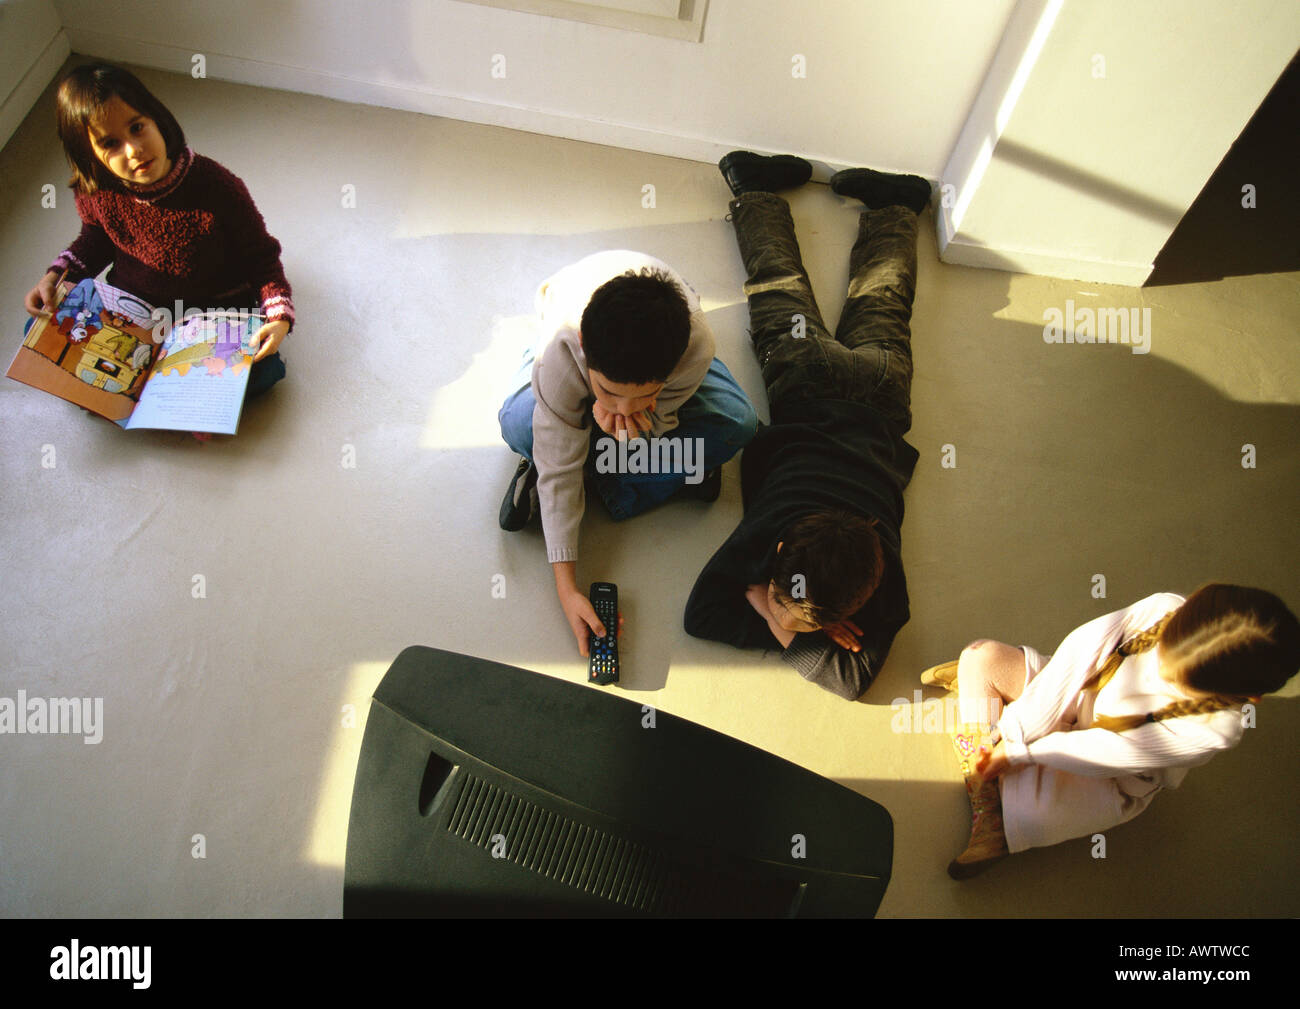 Young boys and girls sitting on floor watching TV, high angle view - Stock Image